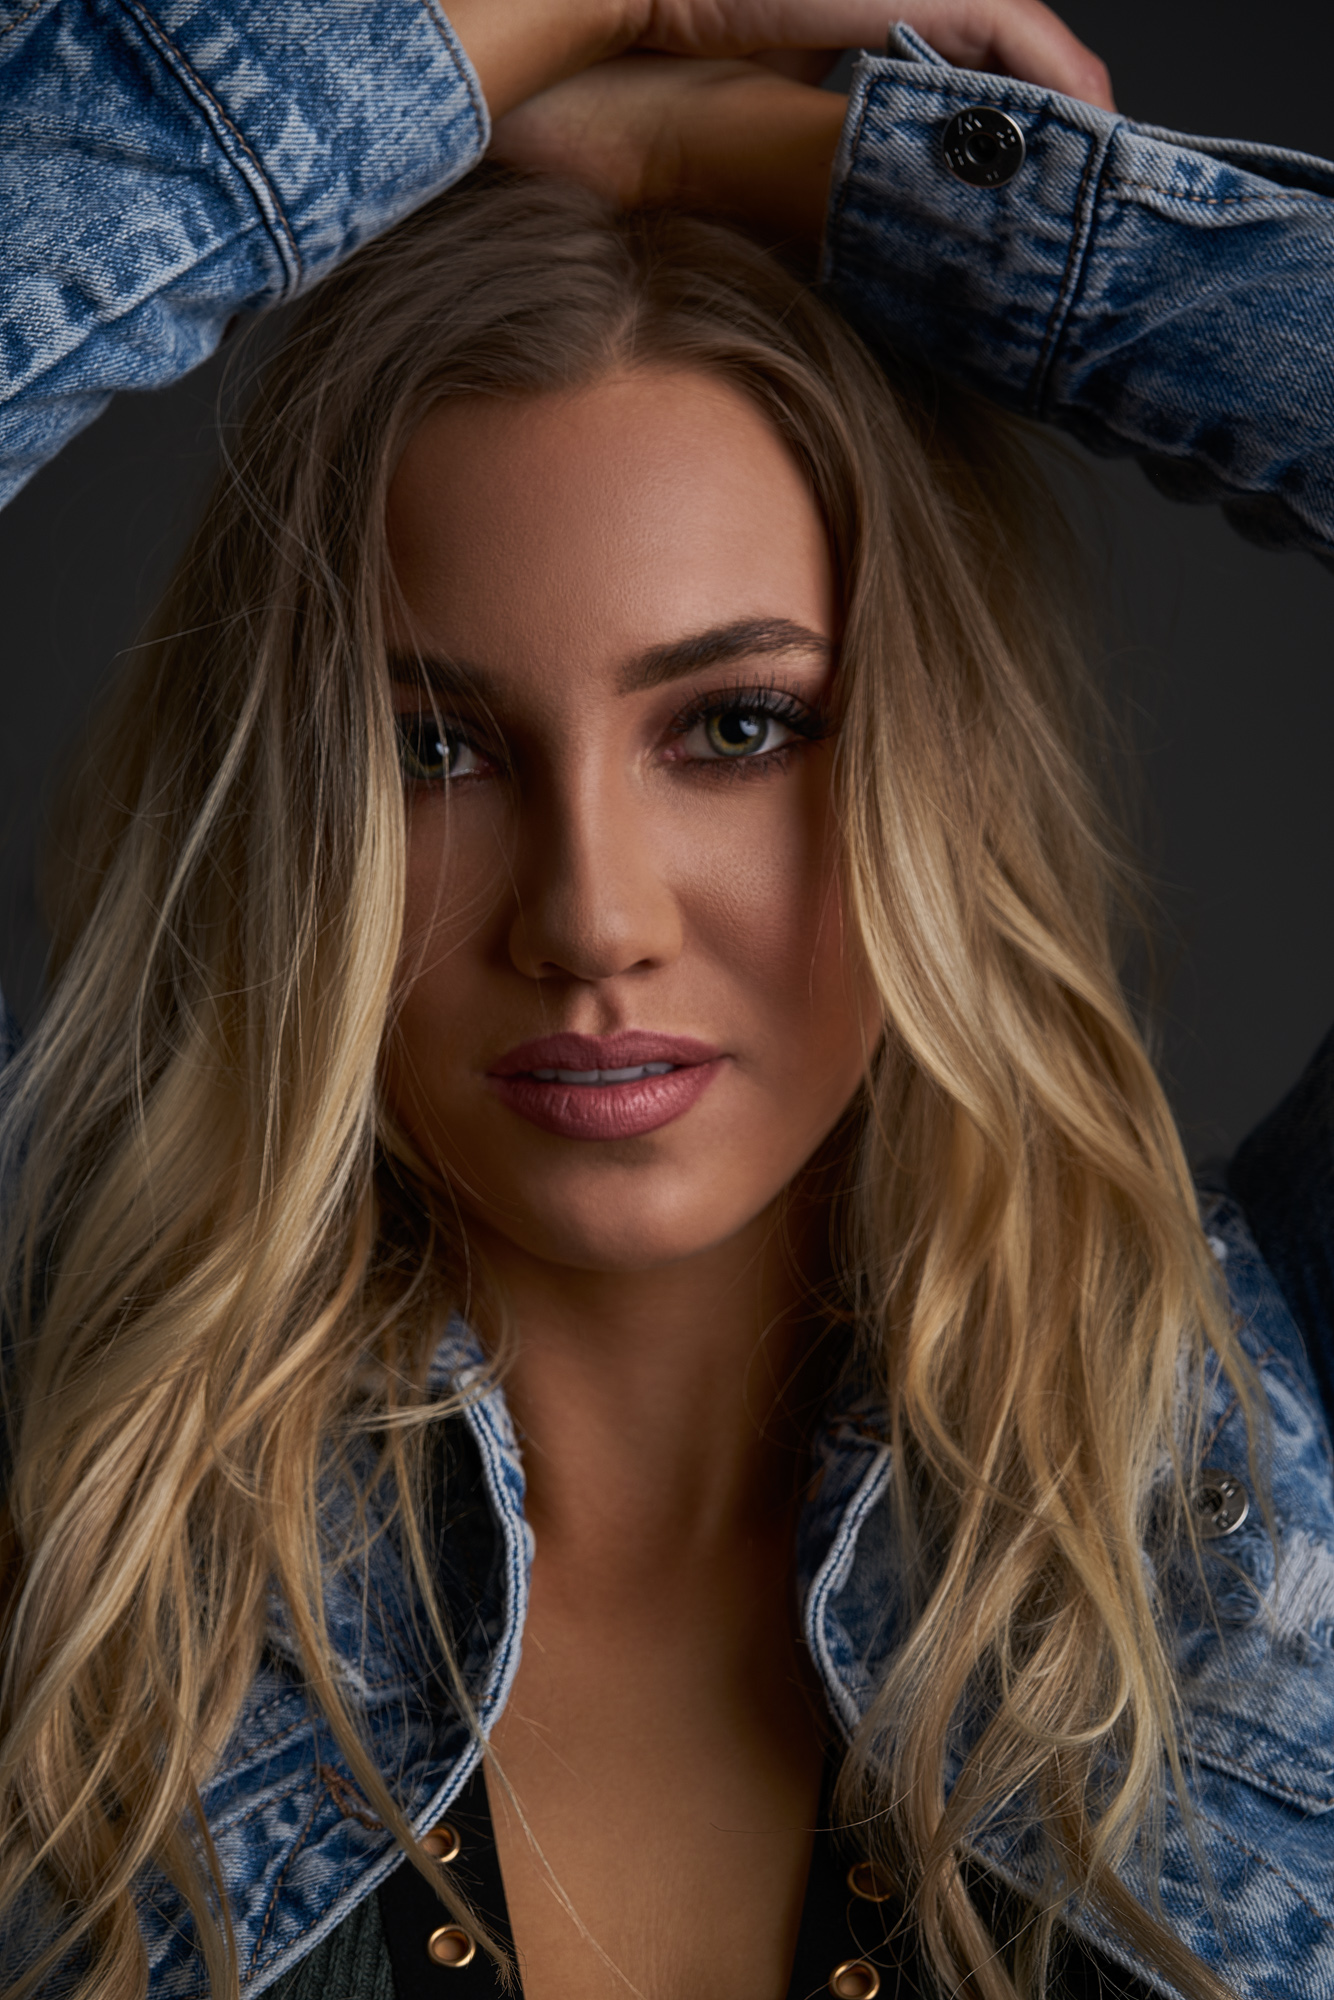 Former Miss Wyoming Lexi Fashion Model by Arizona Fashion Photographer Chad Weed